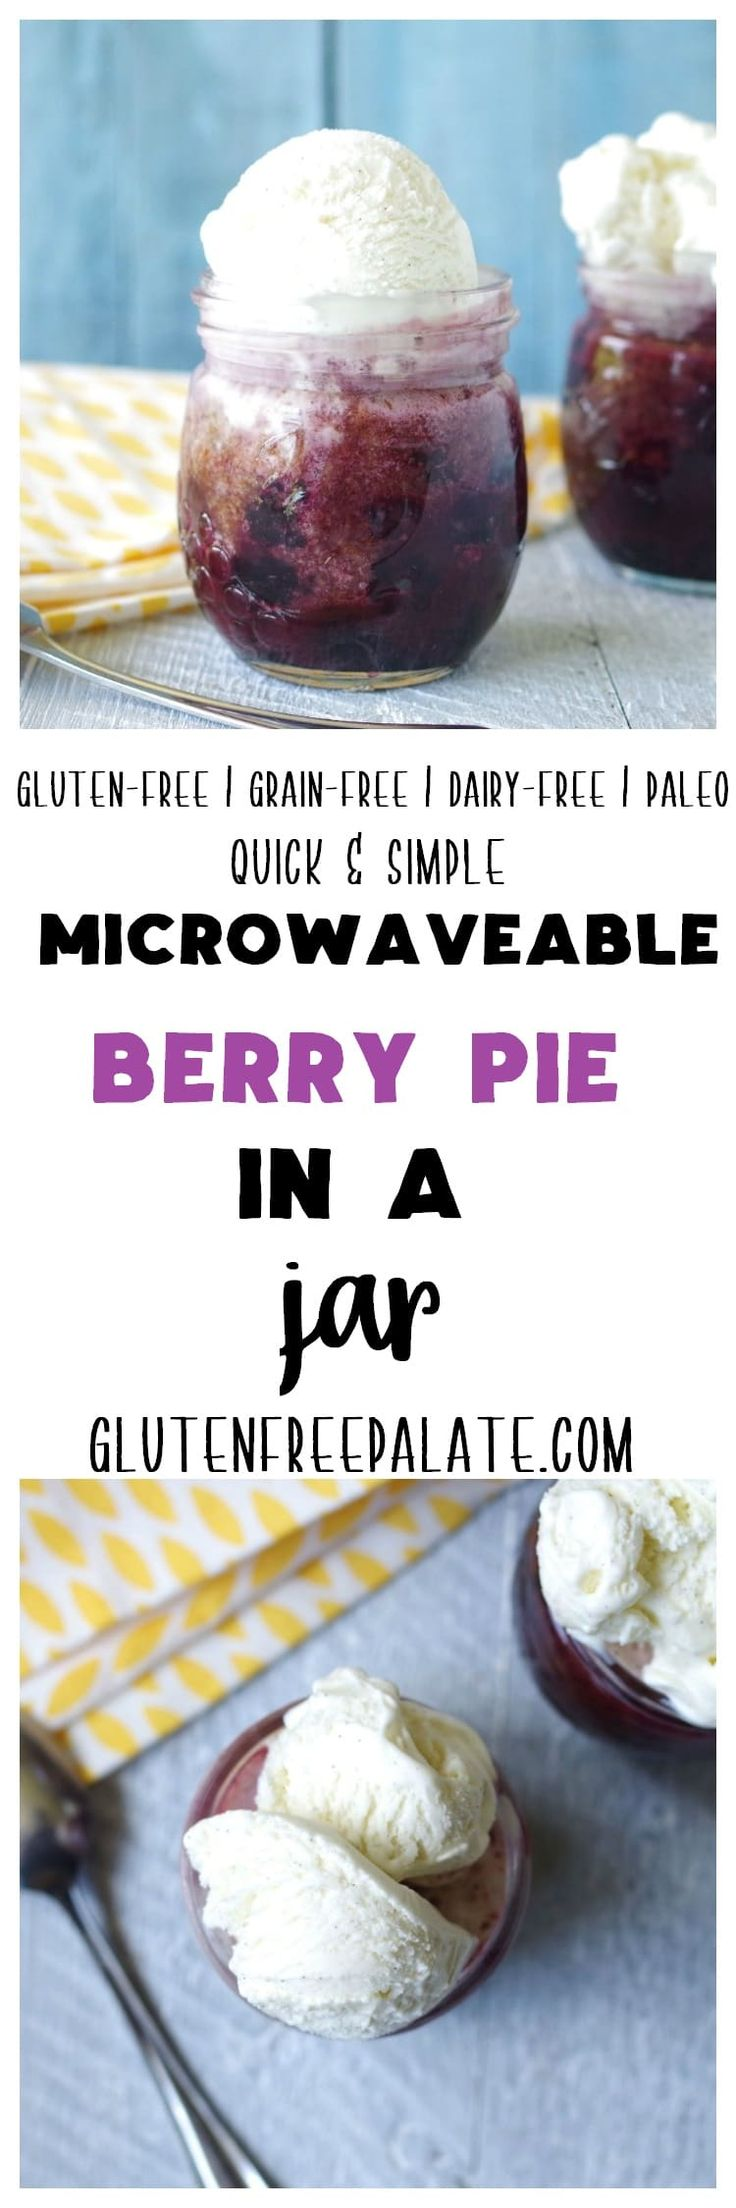 This gluten-free berry pie in a jar is easy to make and is ready in minutes. It's grain-free, dairy-free, egg-free, and refined-sugar free making it also Paleo friendly.